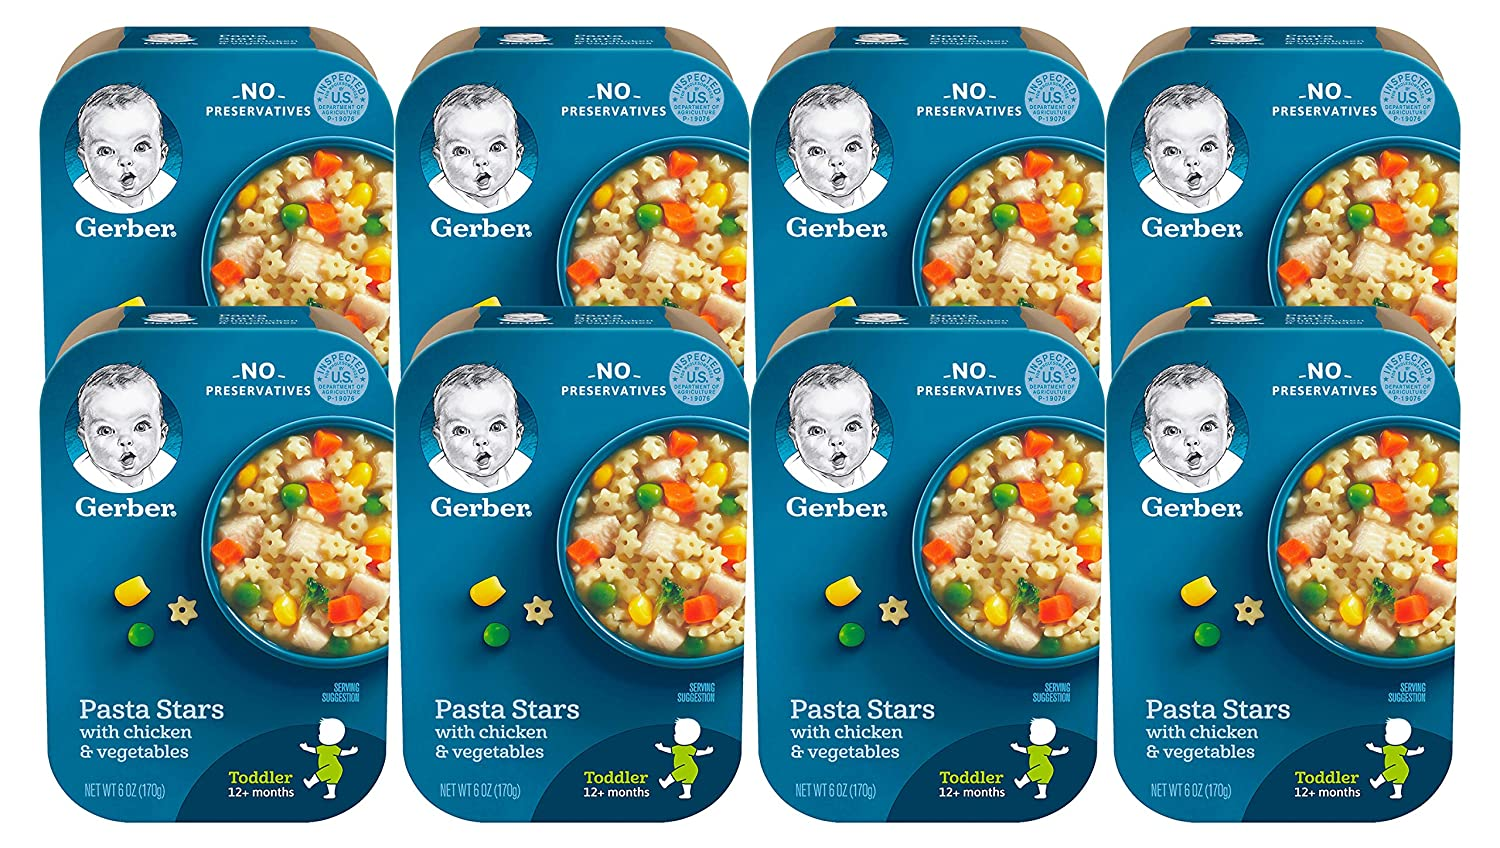 Gerber Lil Meals Tray, Pasta Stars with Chicken & Vegetables, 6 OZ (Pack of 8)